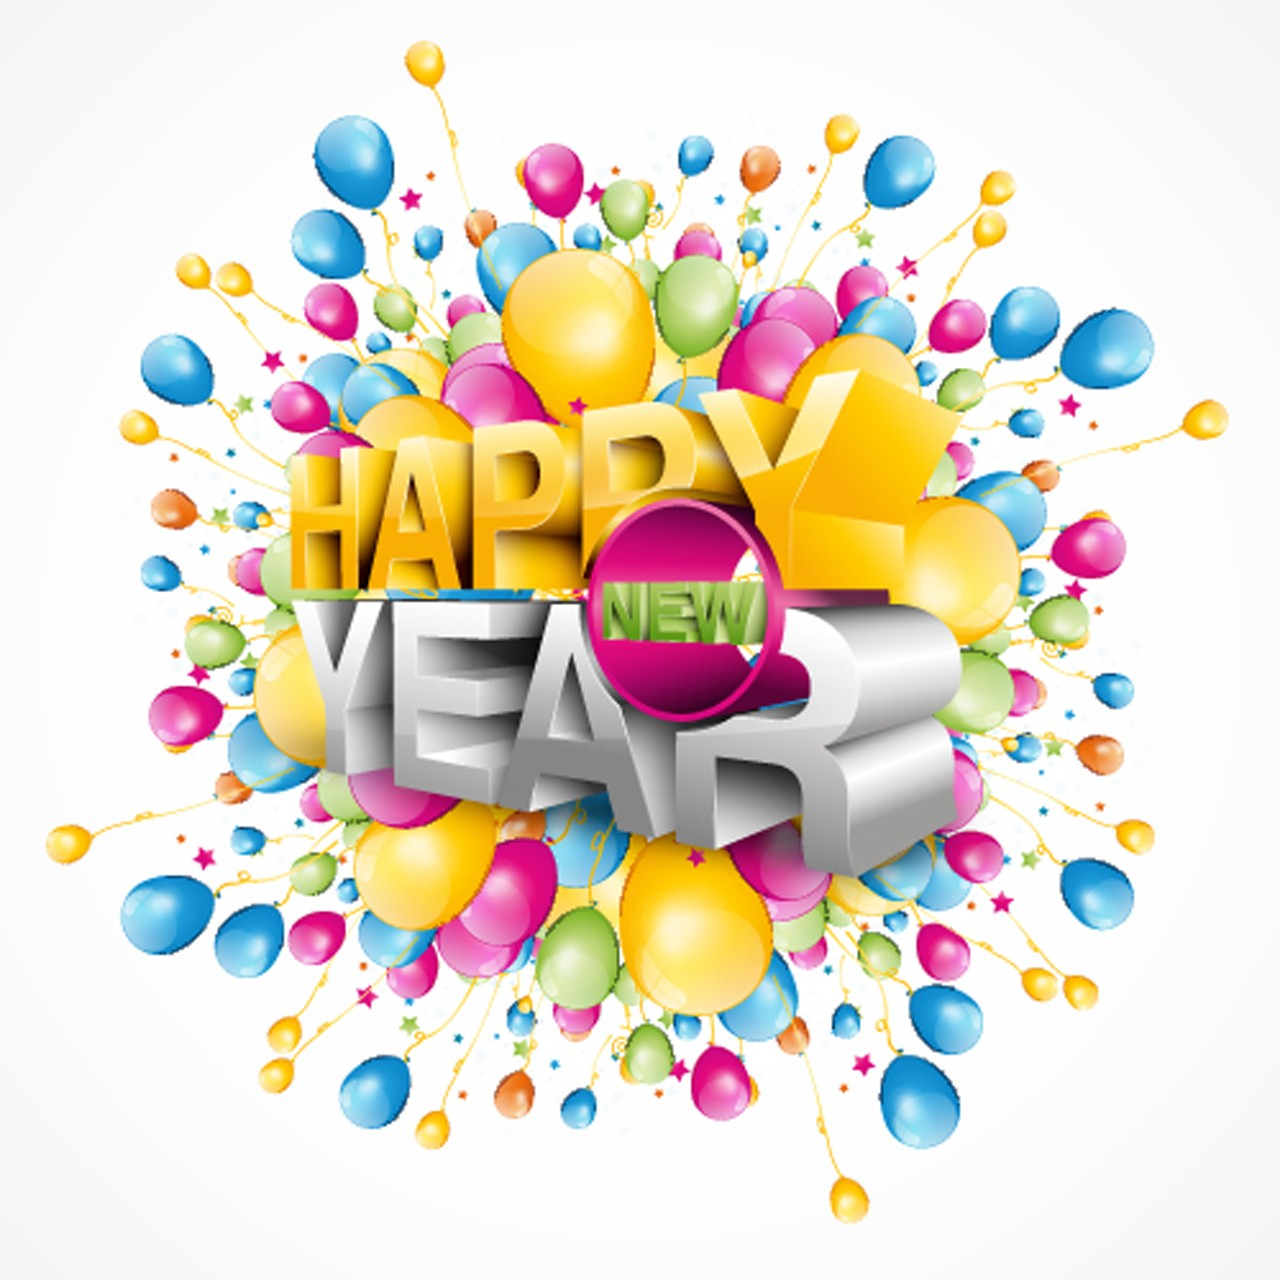 New year clipart 2016 countdown png library 1000+ images about HAPPY NEW YEAR 2016 on Pinterest | Happy new ... png library